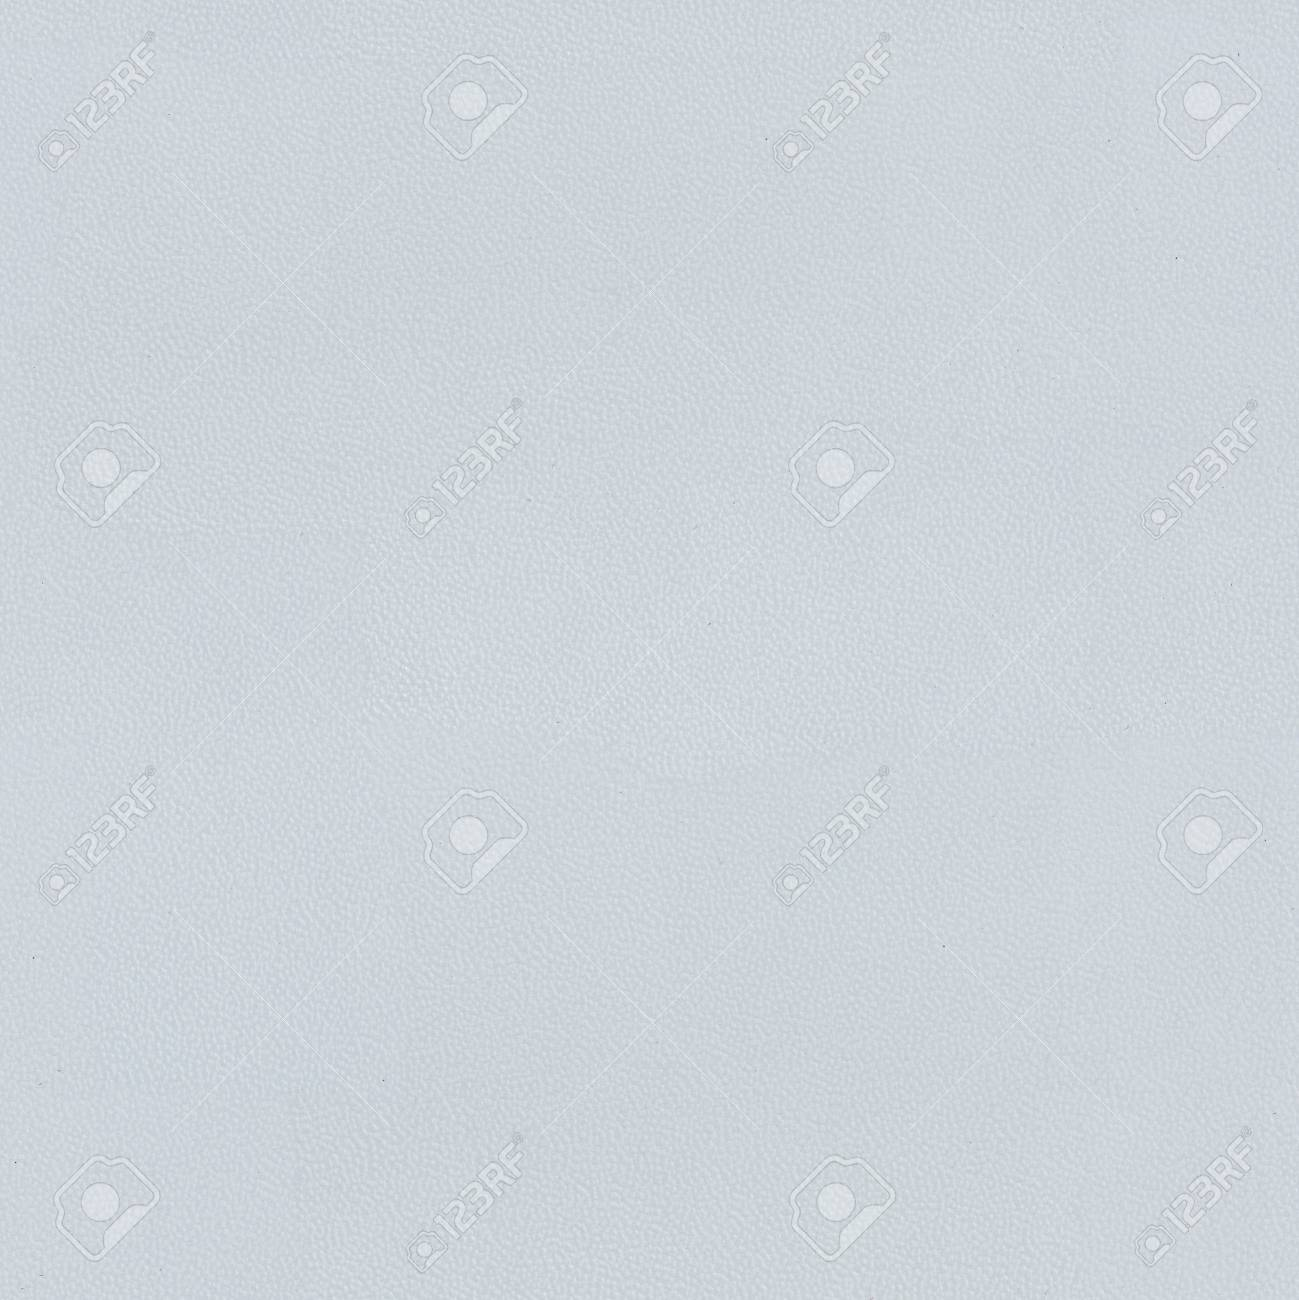 Close Up Of A White Leather Texture Seamless Square Background Tile Ready High